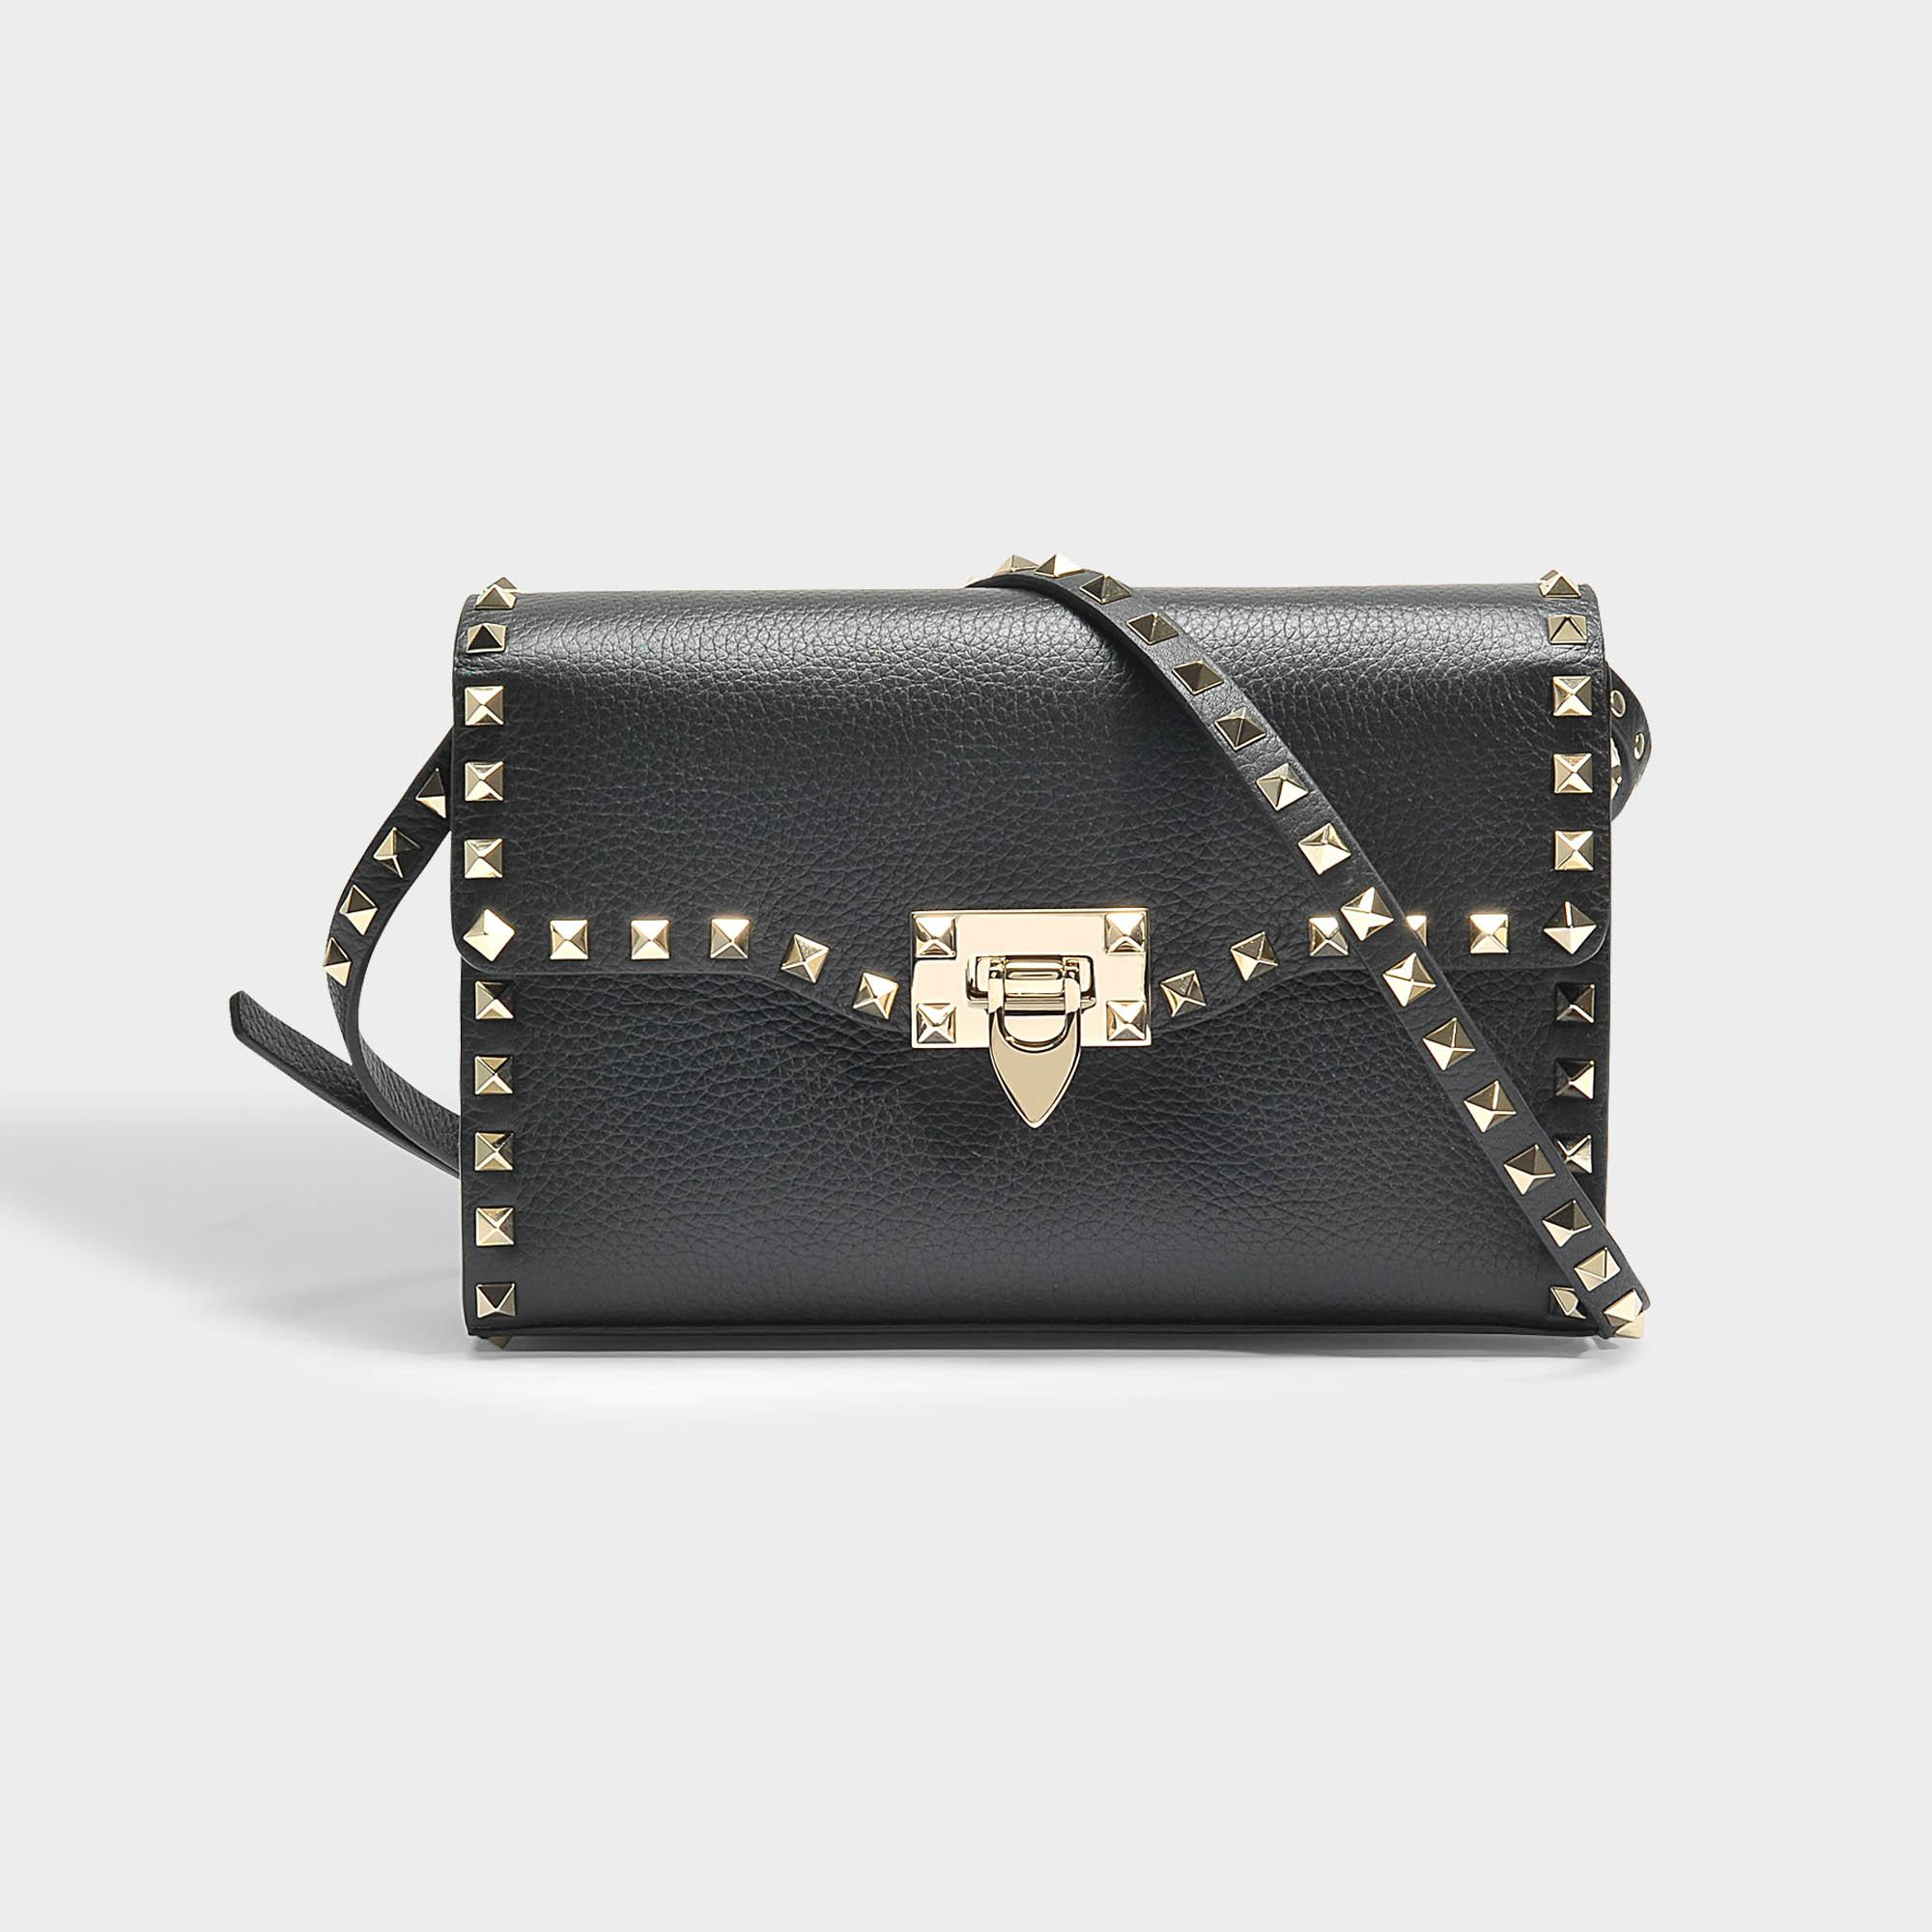 181 Rockstud Medium shoulder bag Valentino SgY0FsH6